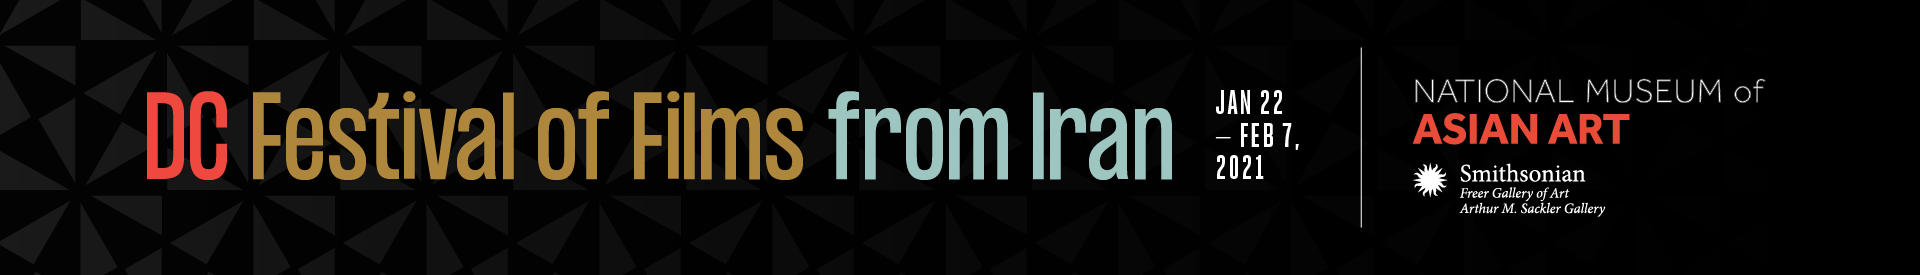 DC Festival of Films from Iran